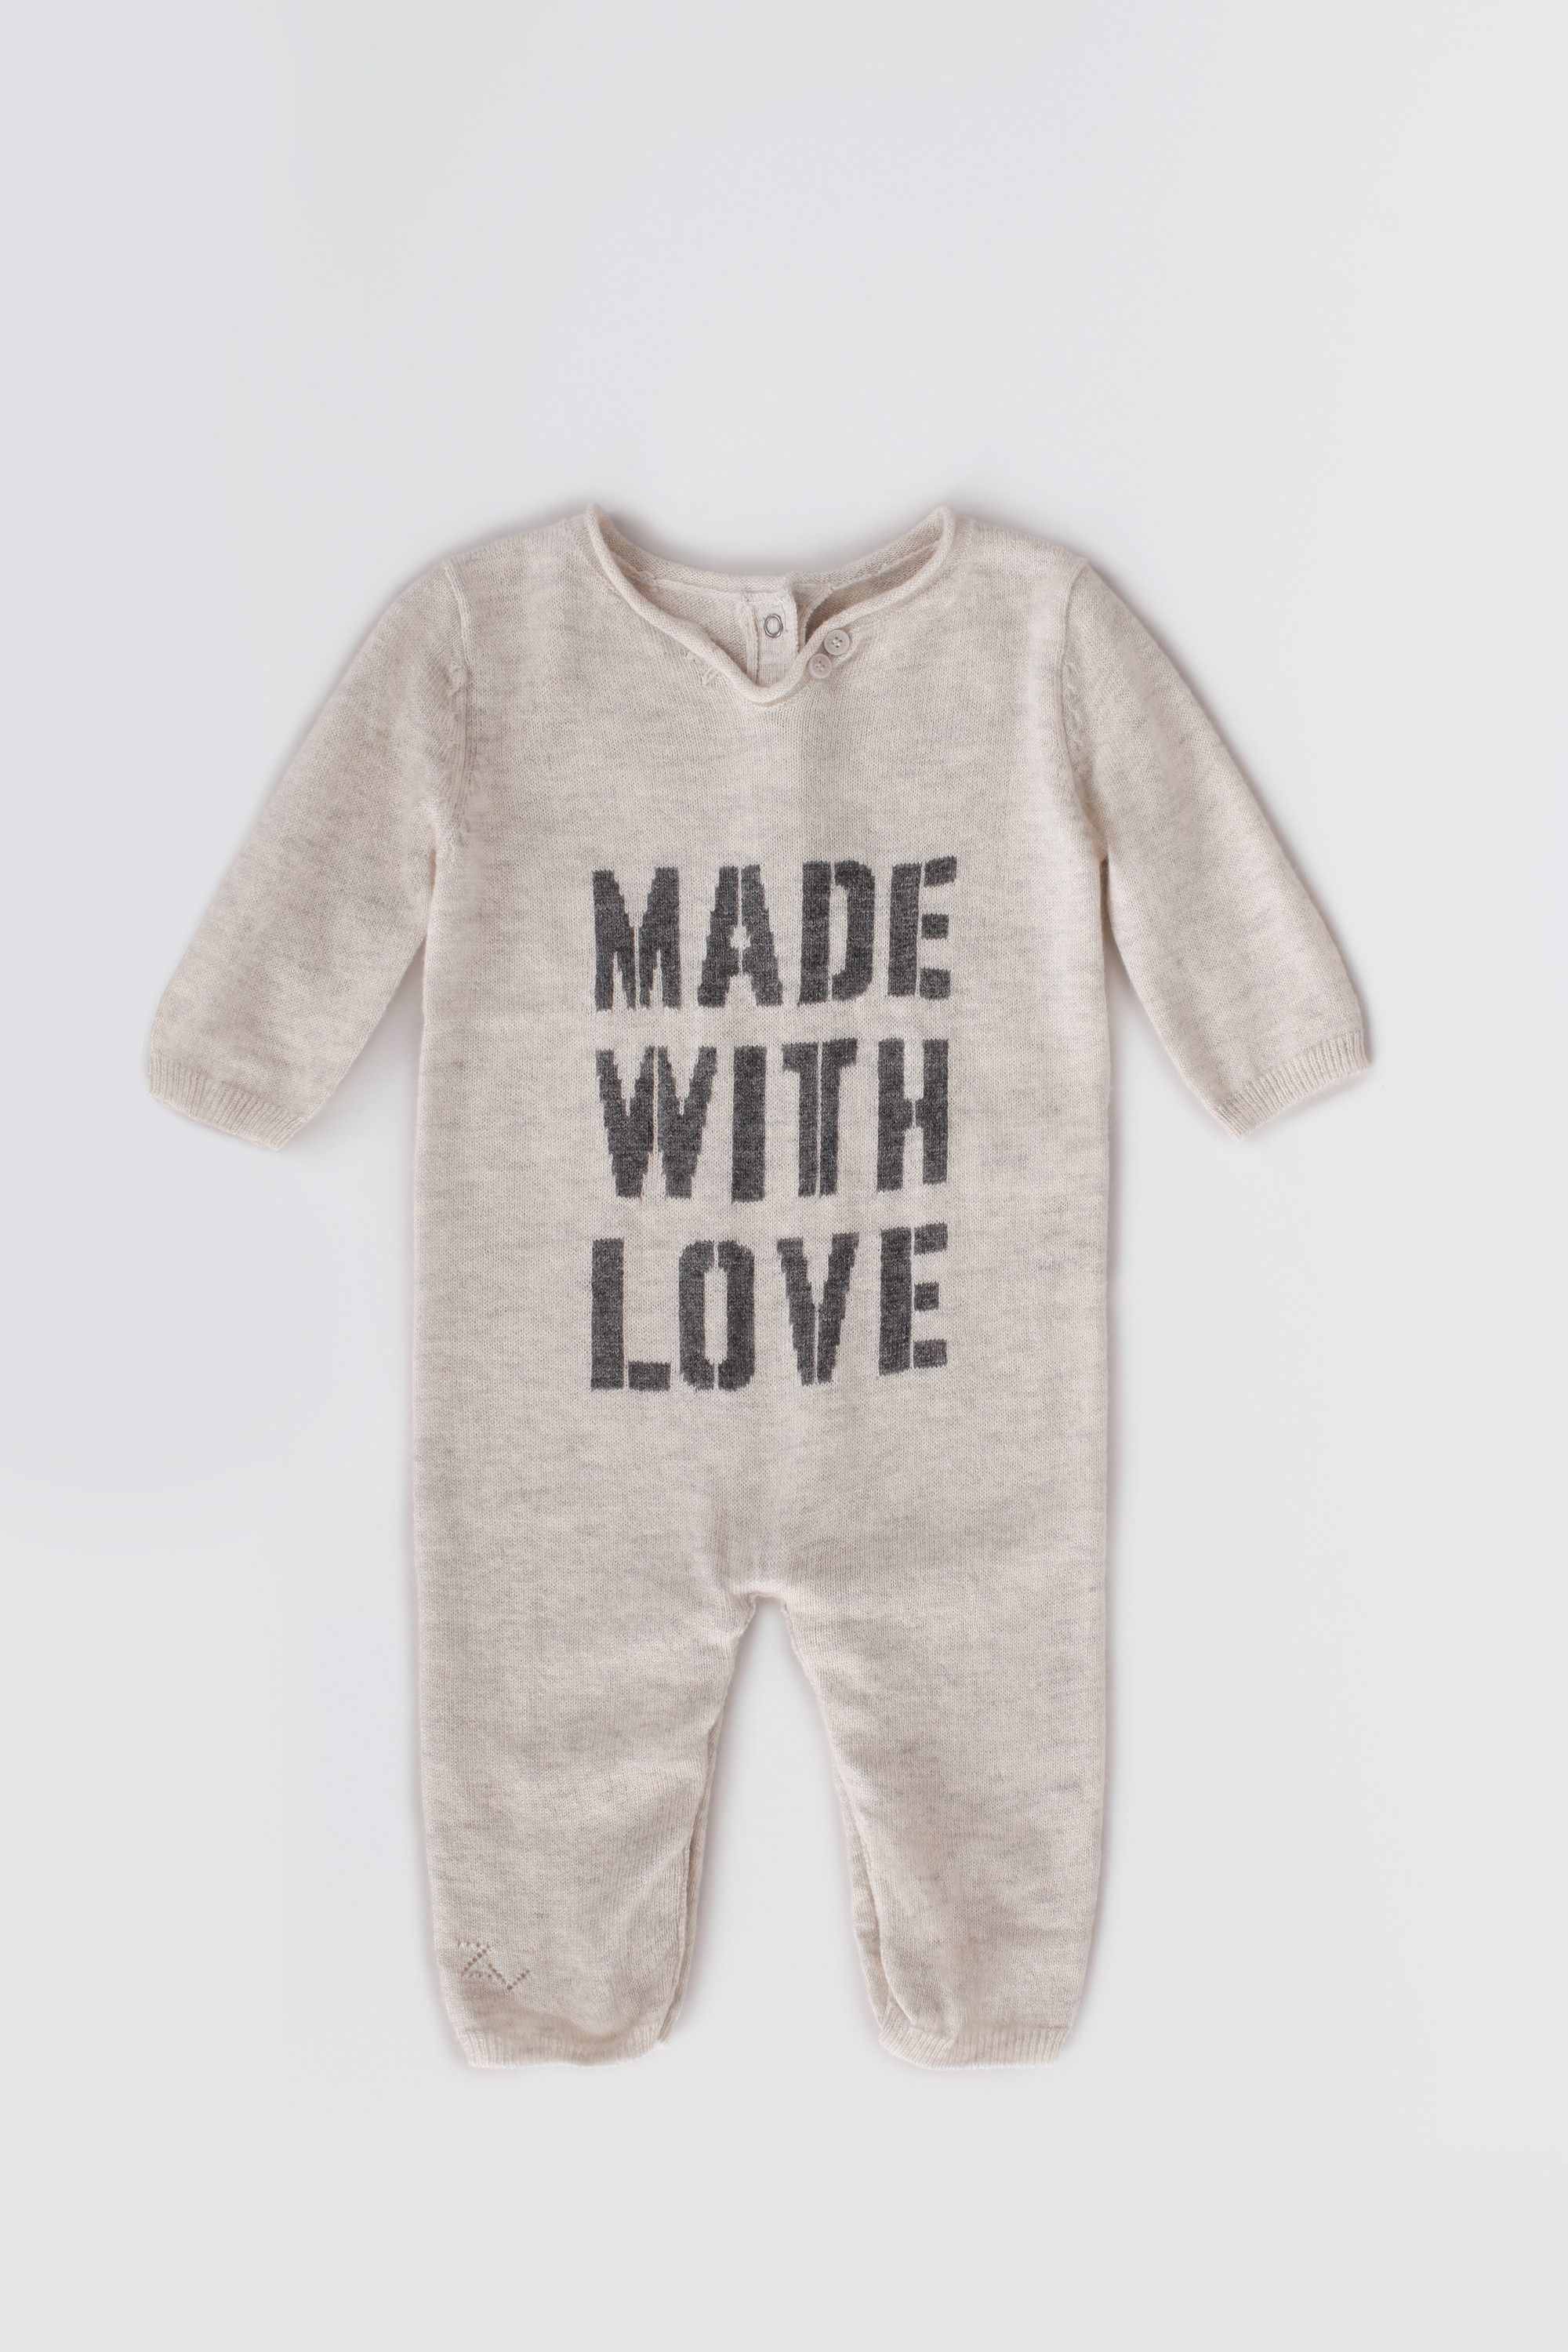 1160cc3c0cc2 baby romper - made with love